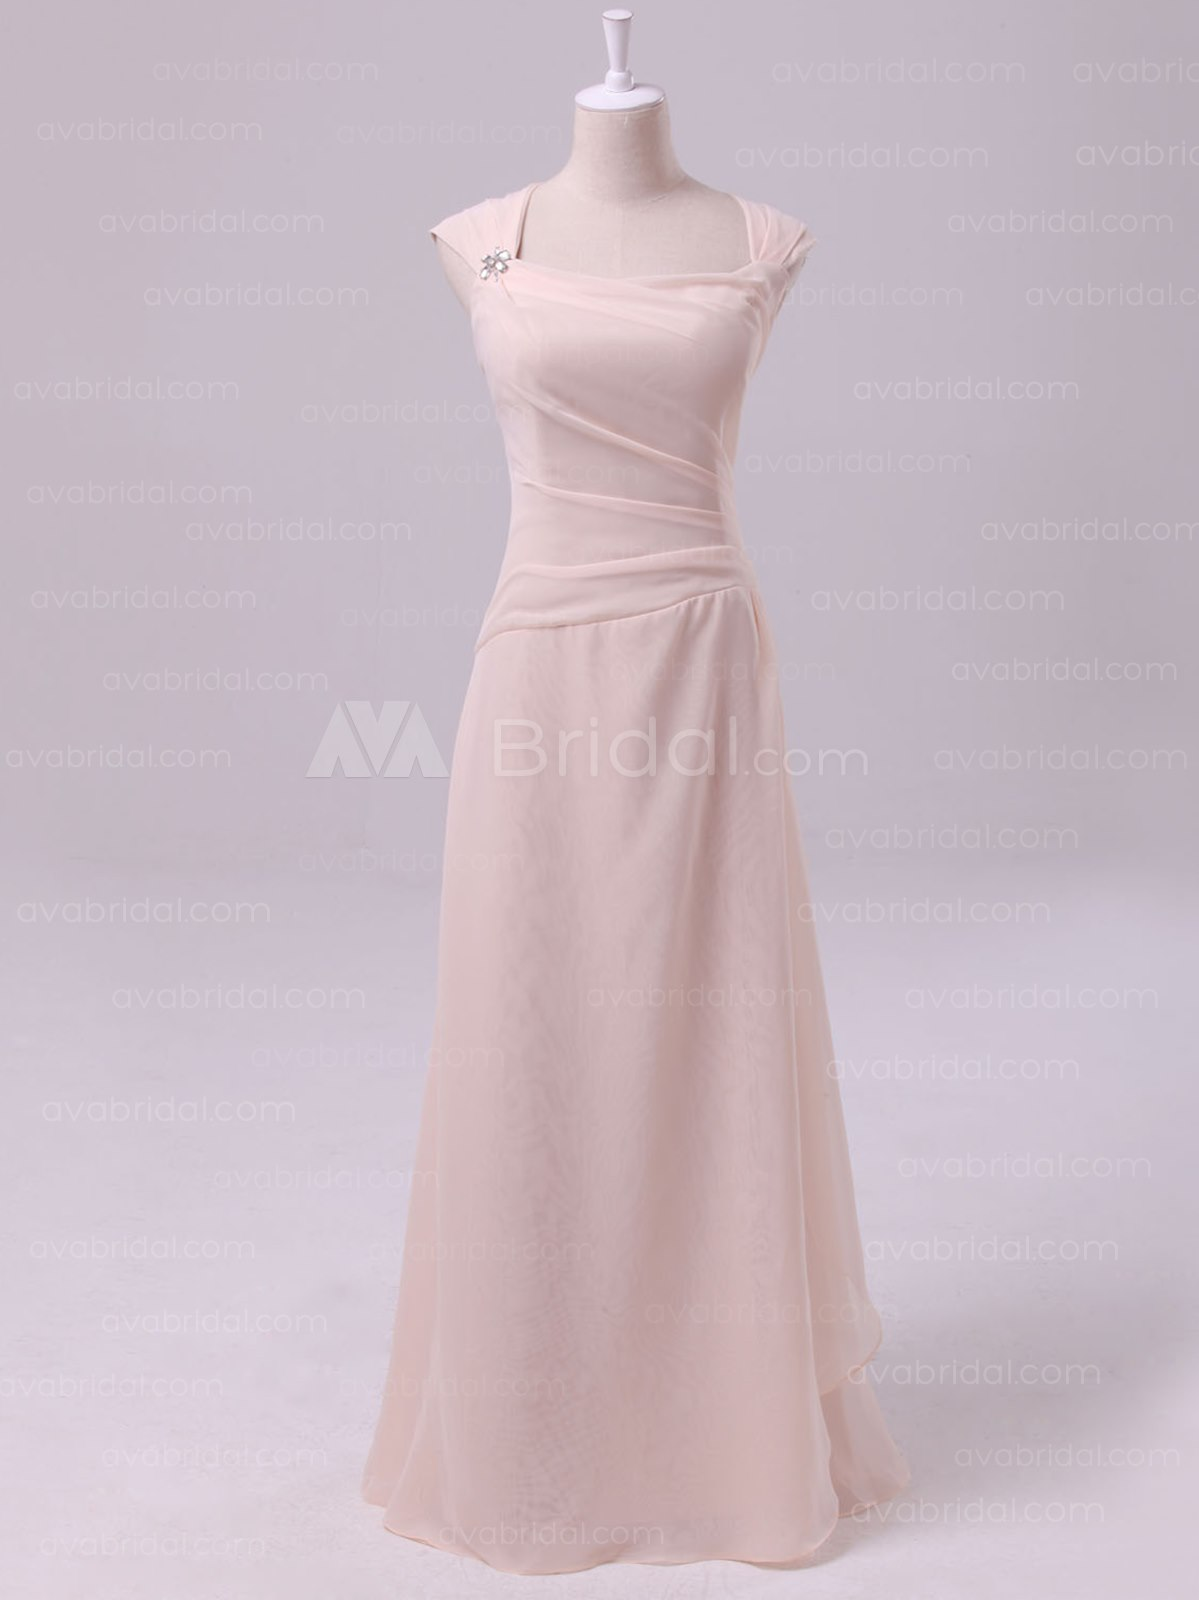 Chic Sheath Bridesmaid Dress B465-Front